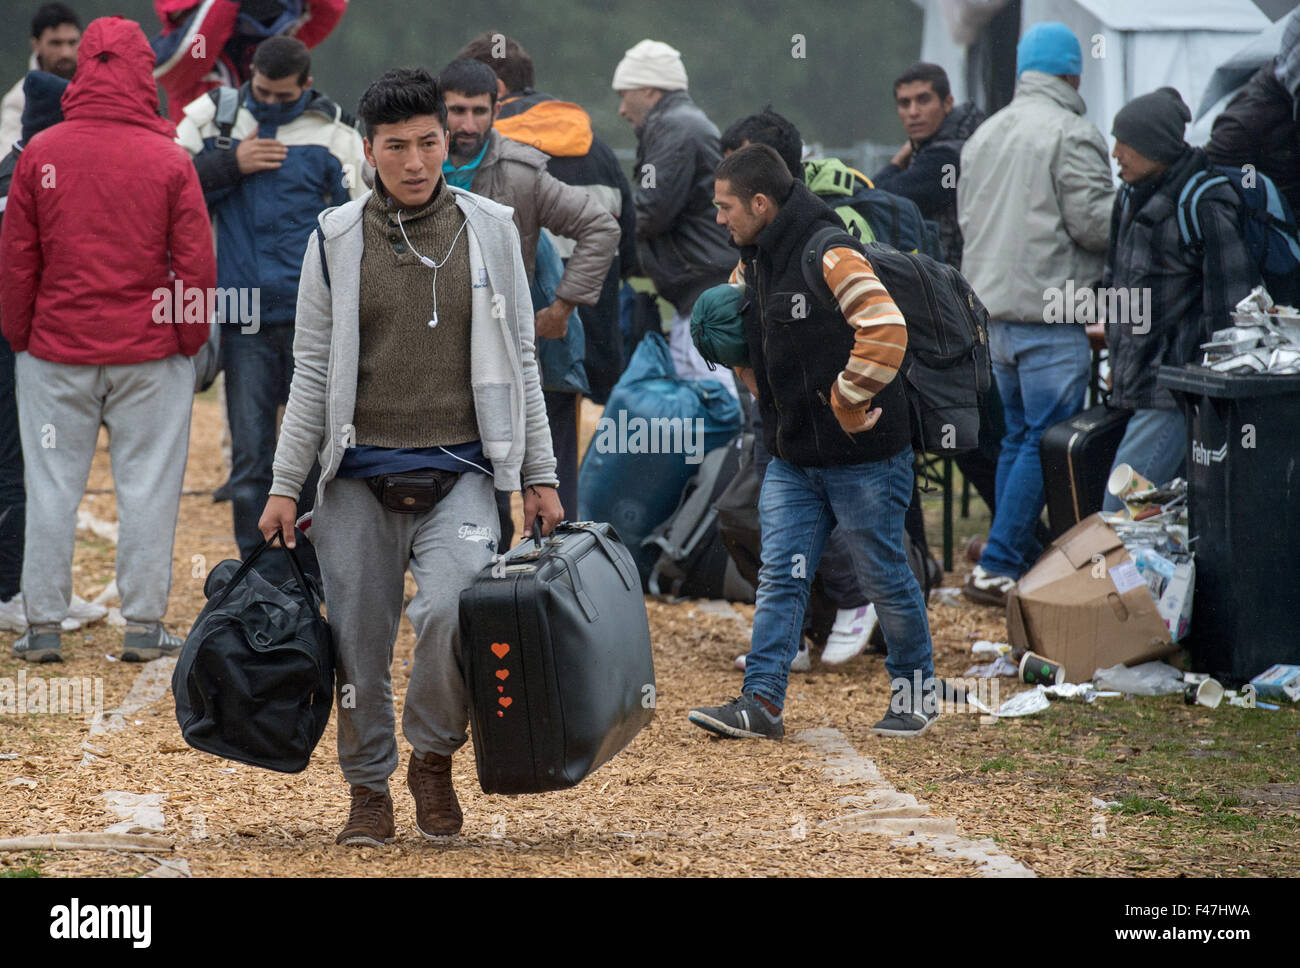 Schwarzenborn, Germany. 15th Oct, 2015. In temperatures hovering just above freezing, refugees vacate a tent camp - Stock Image